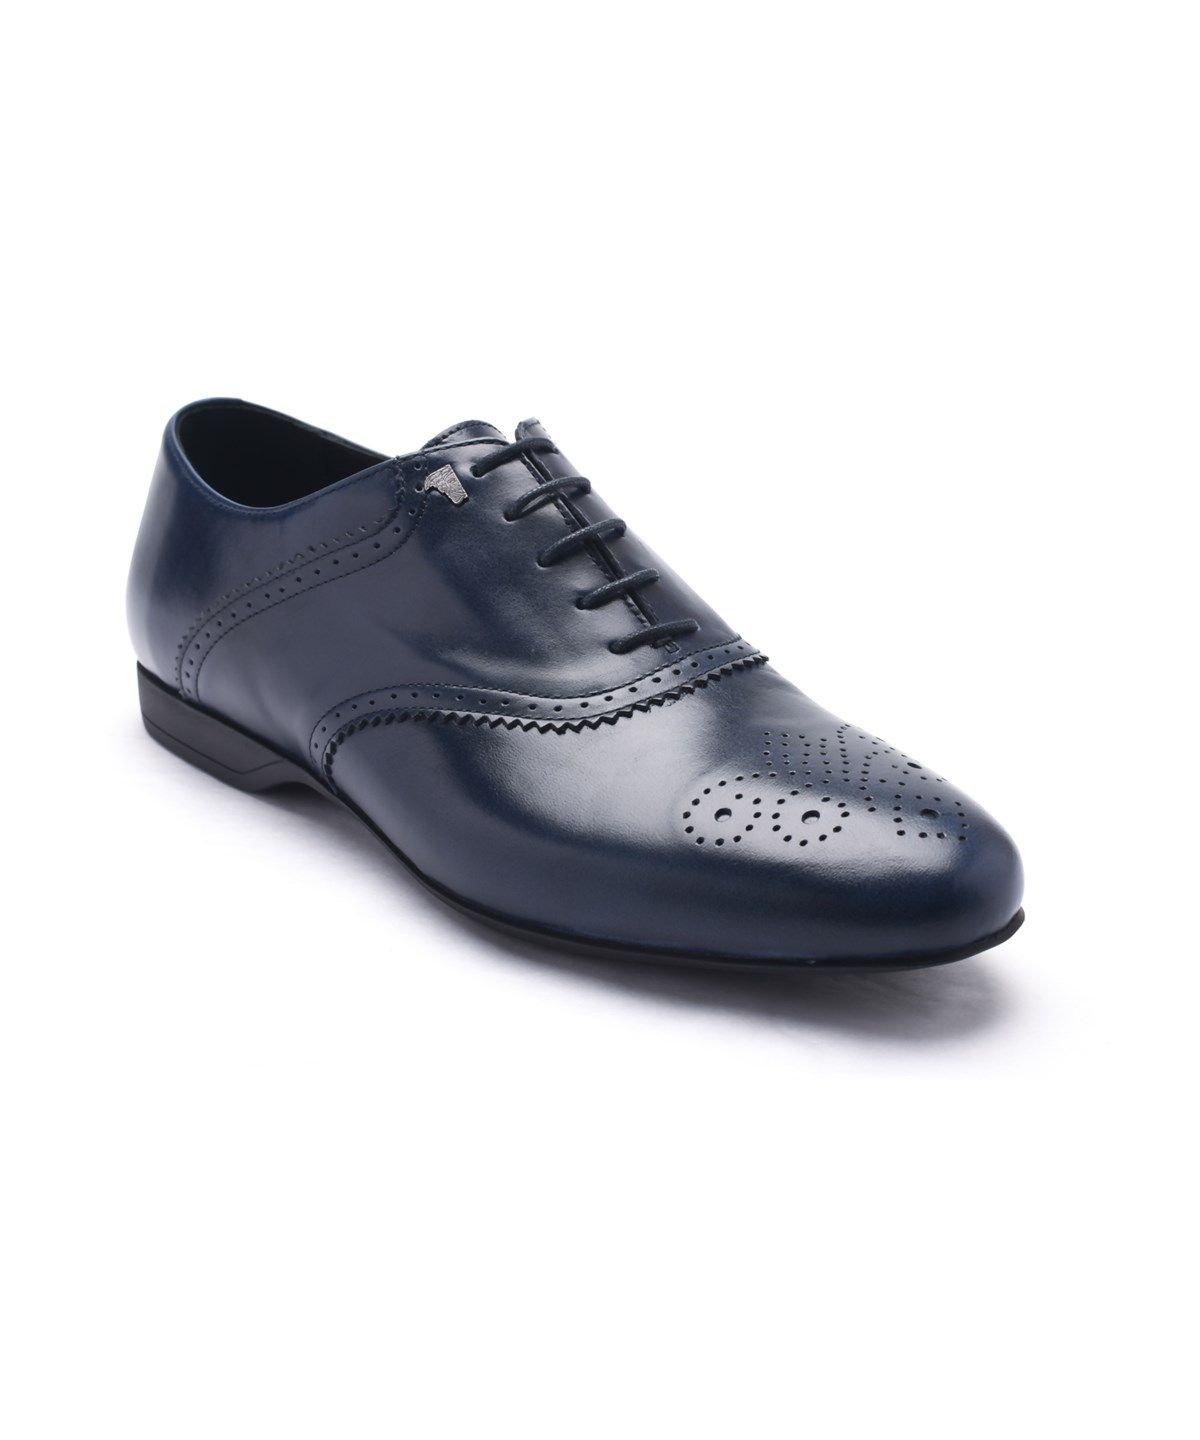 f1173e30bb62dd VERSACE VERSACE COLLECTION MEN S LEATHER OXFORD LACE-UP DRESS SHOES DARK  BLUE NAVY .  versace  shoes  oxfords